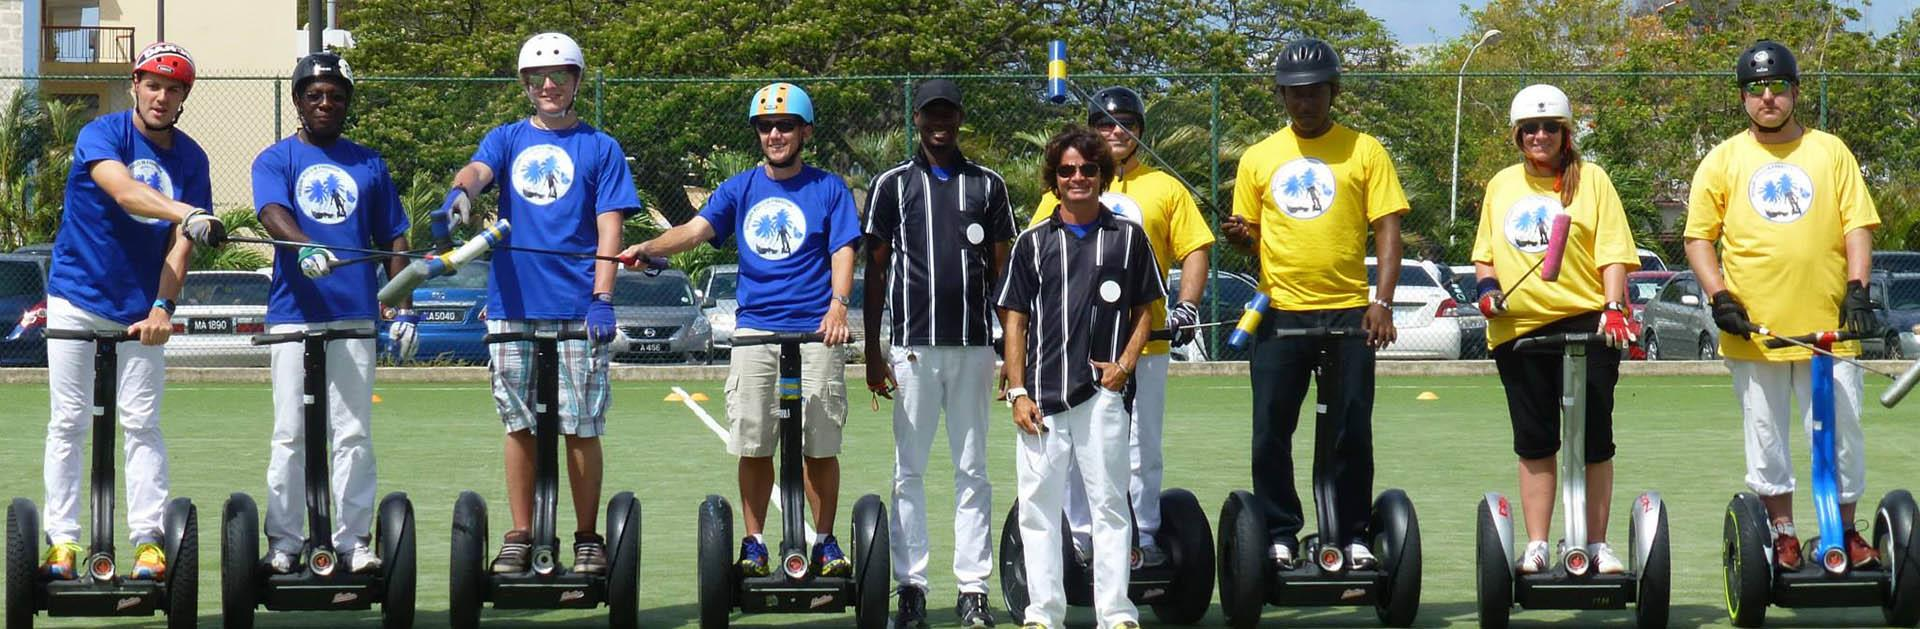 Segway Polo in Paradise